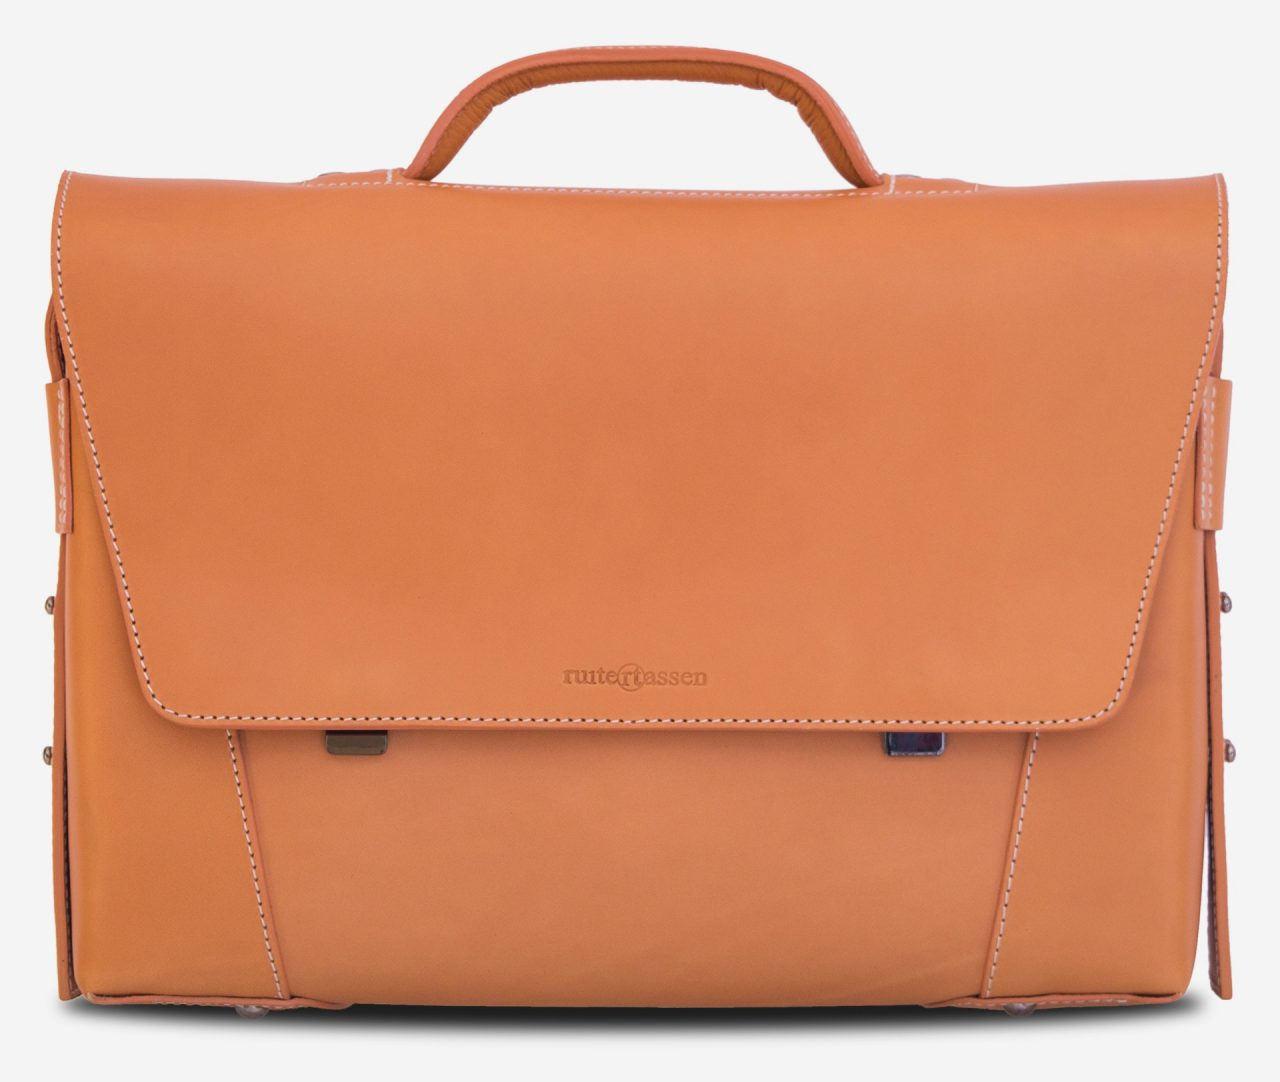 Front view of the vegetable tanned leather briefcase bag with laptop pocket - 102177.